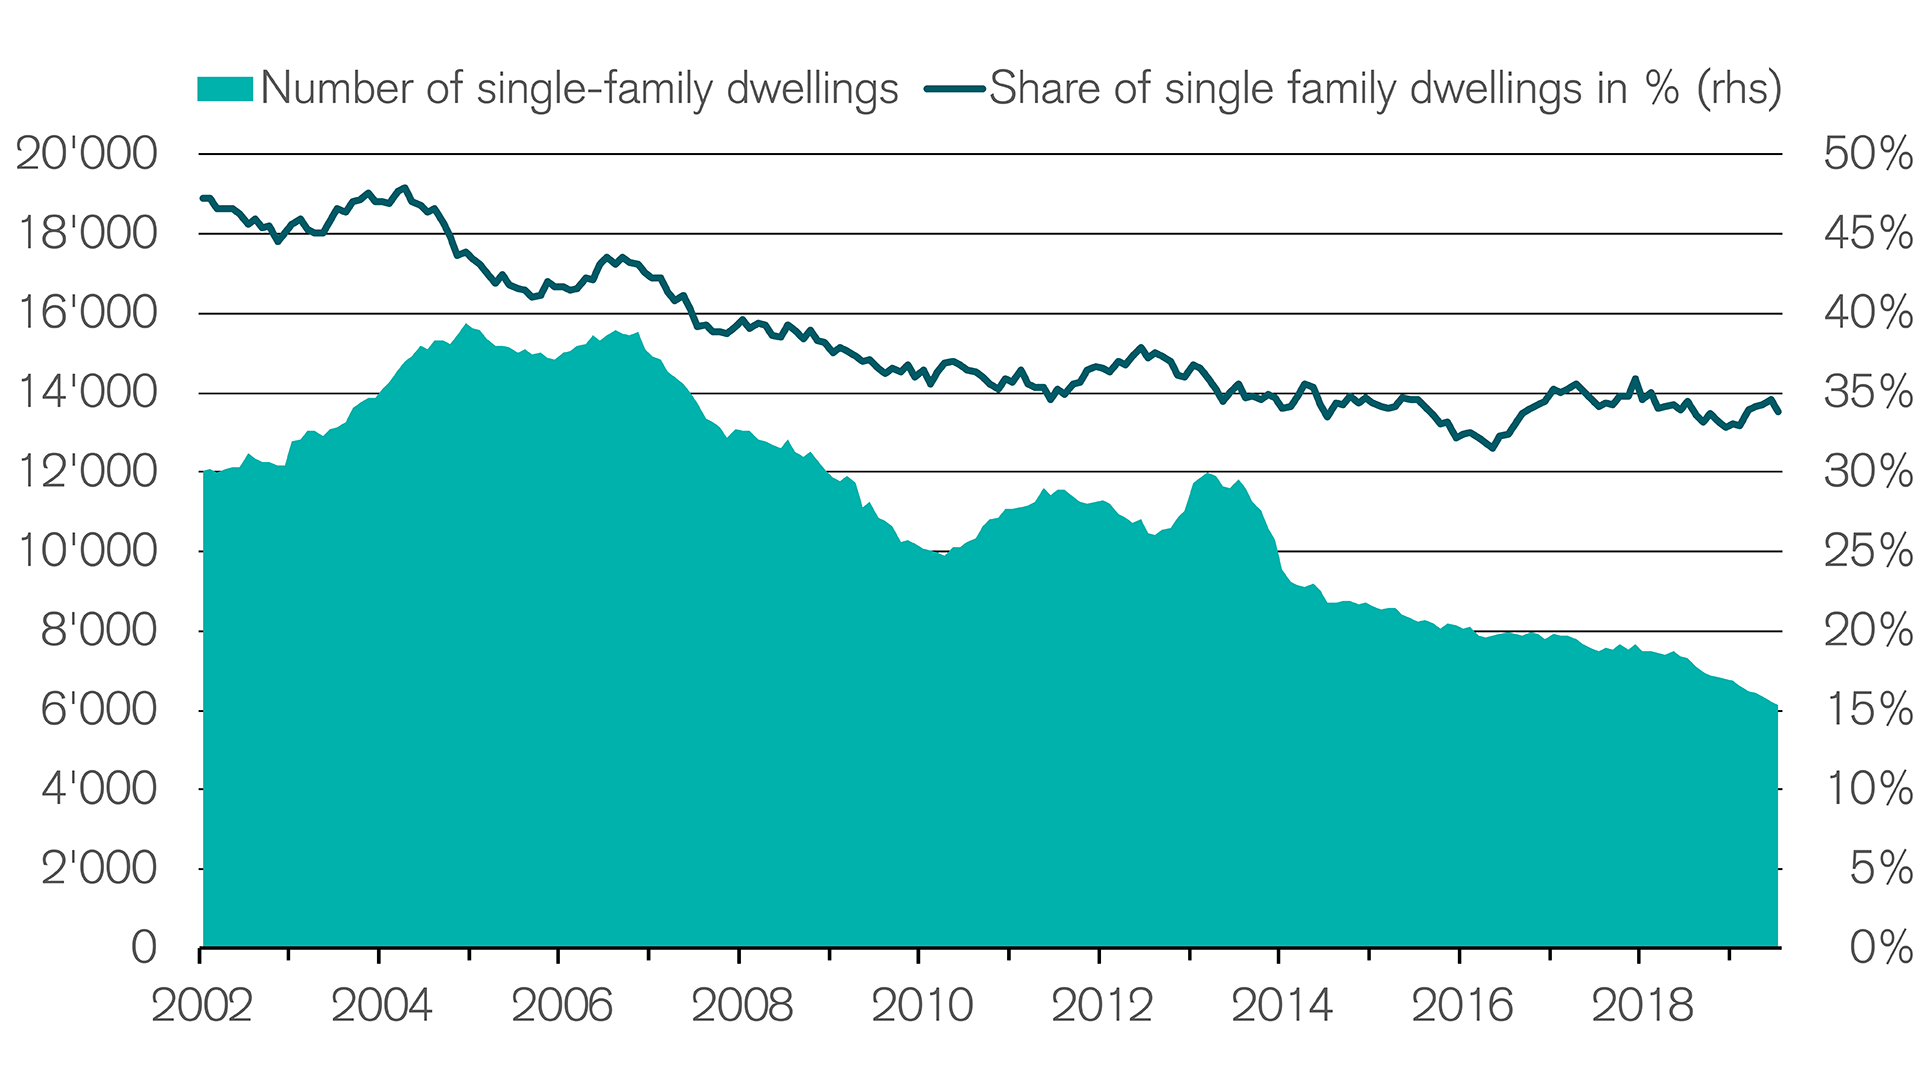 Building permits for single family dwellings